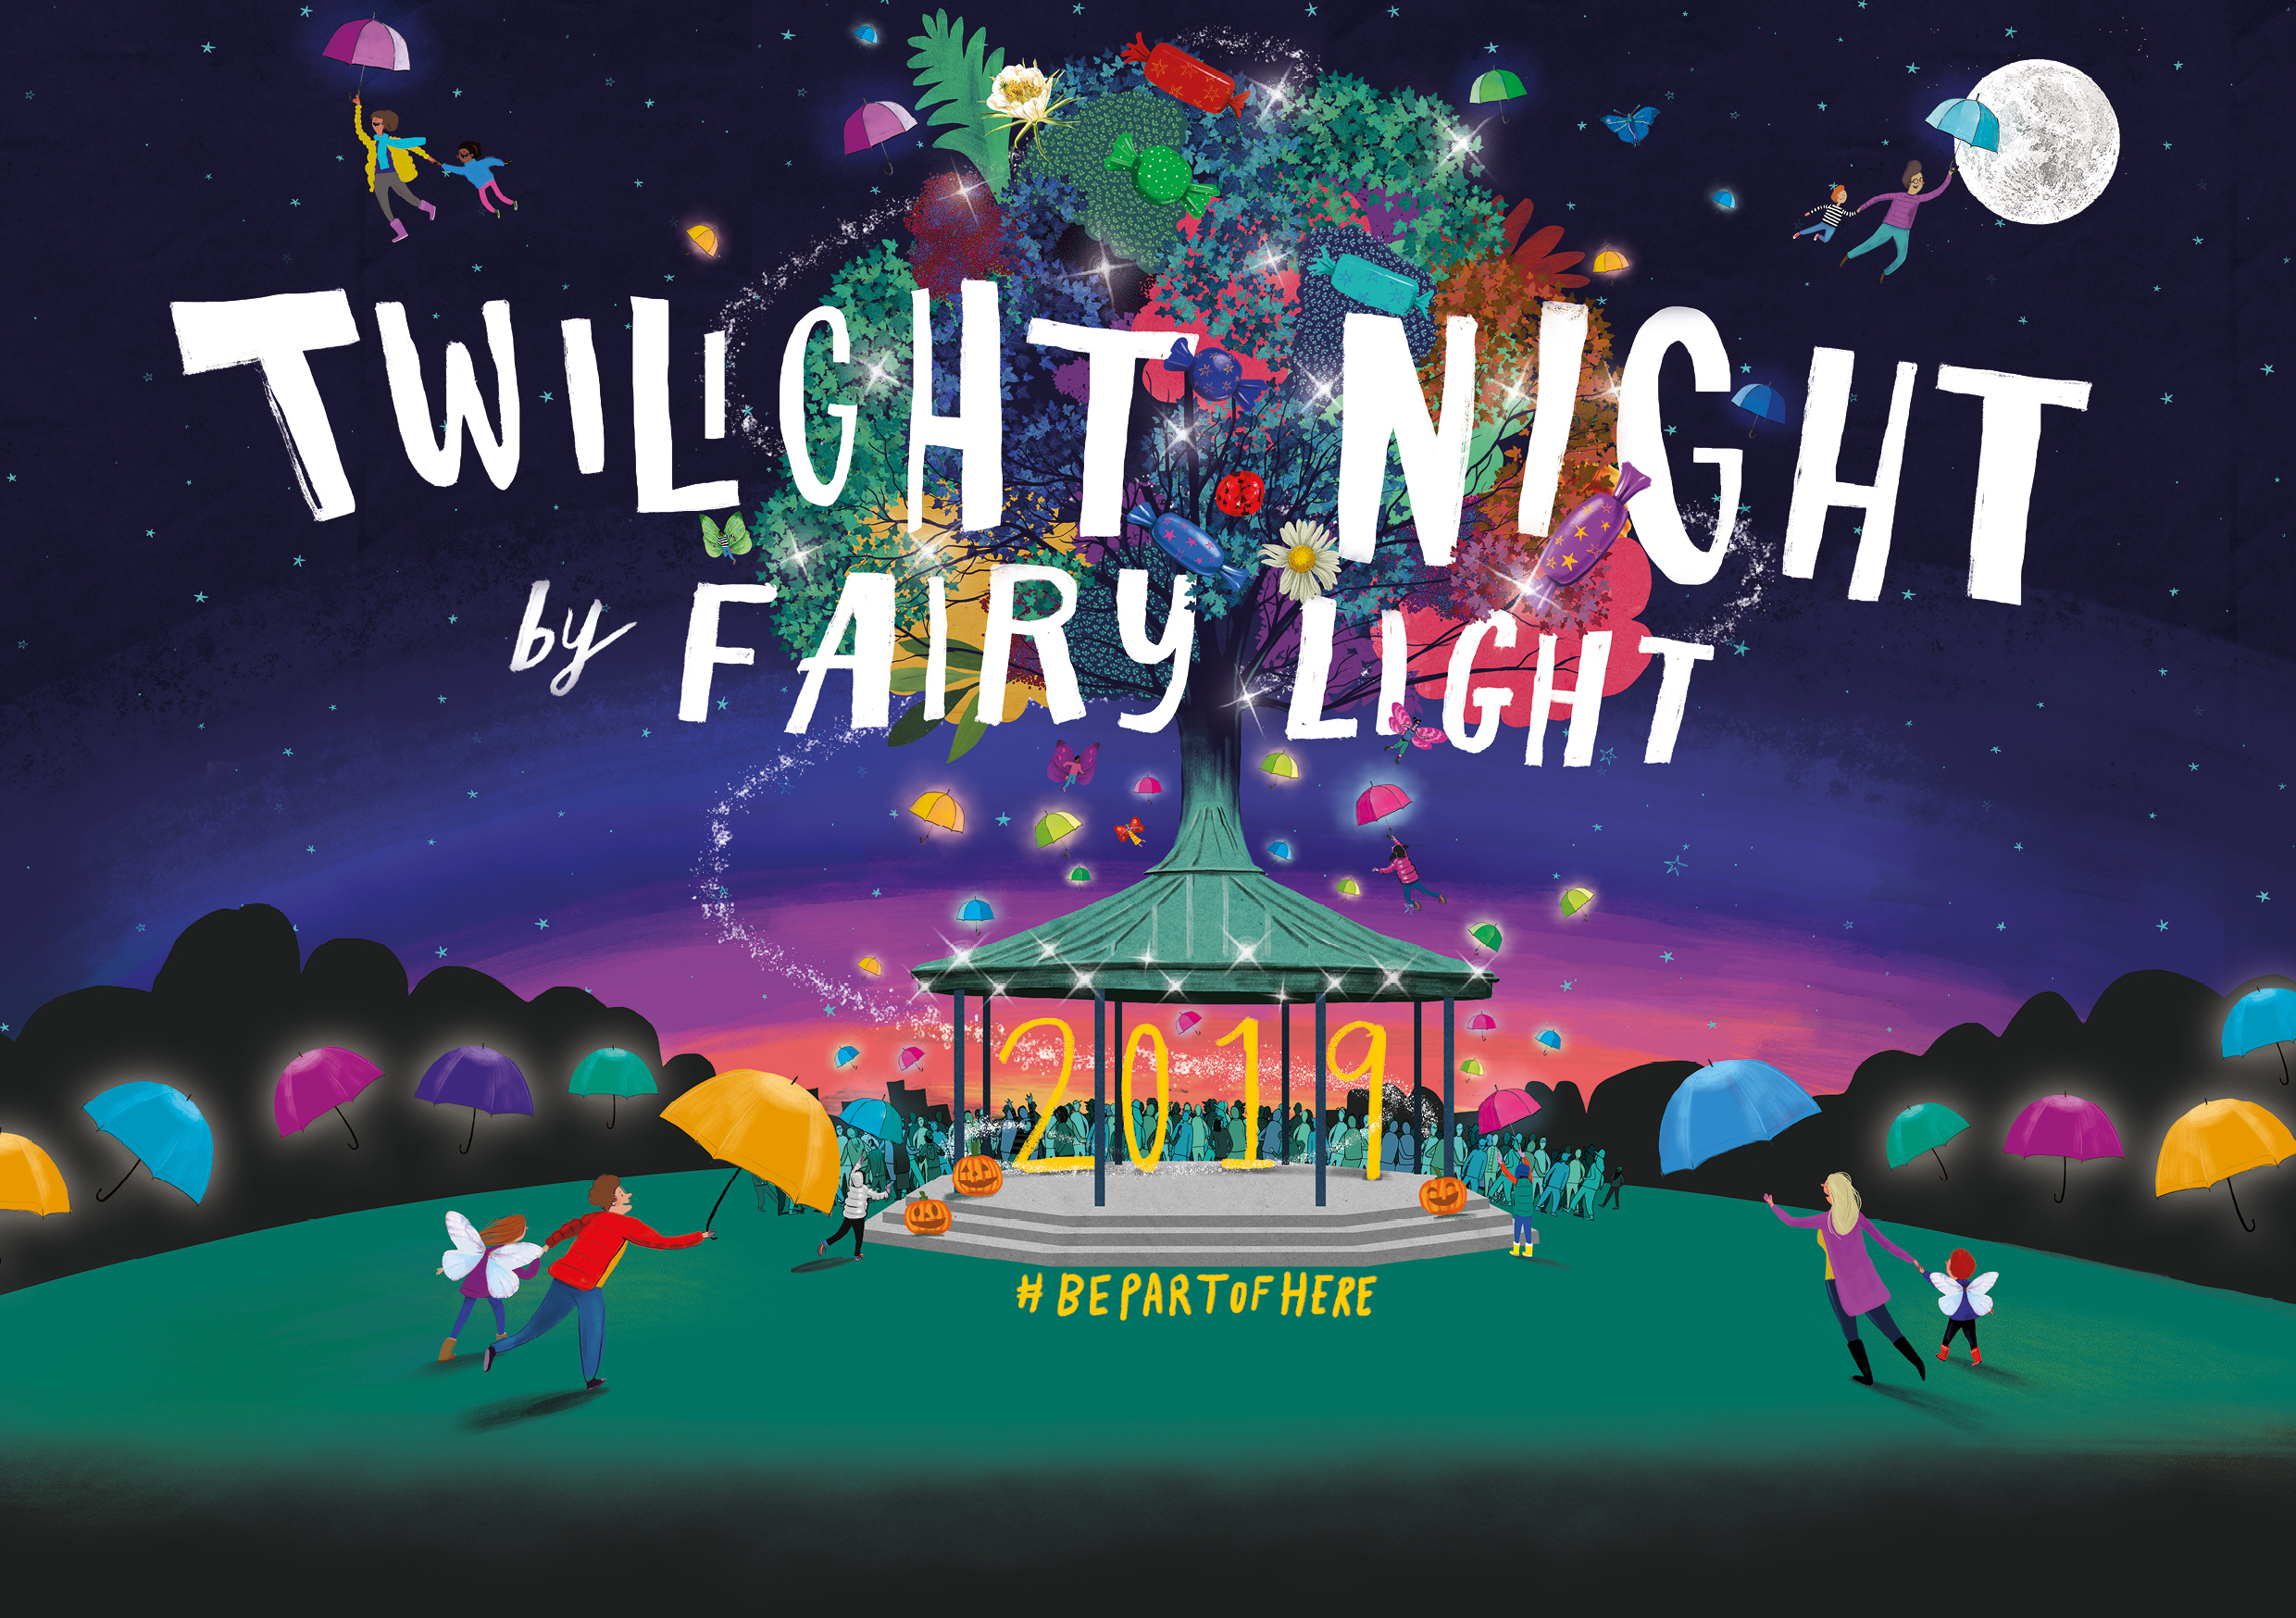 Twilight Night 2019 Frequently Asked Questions